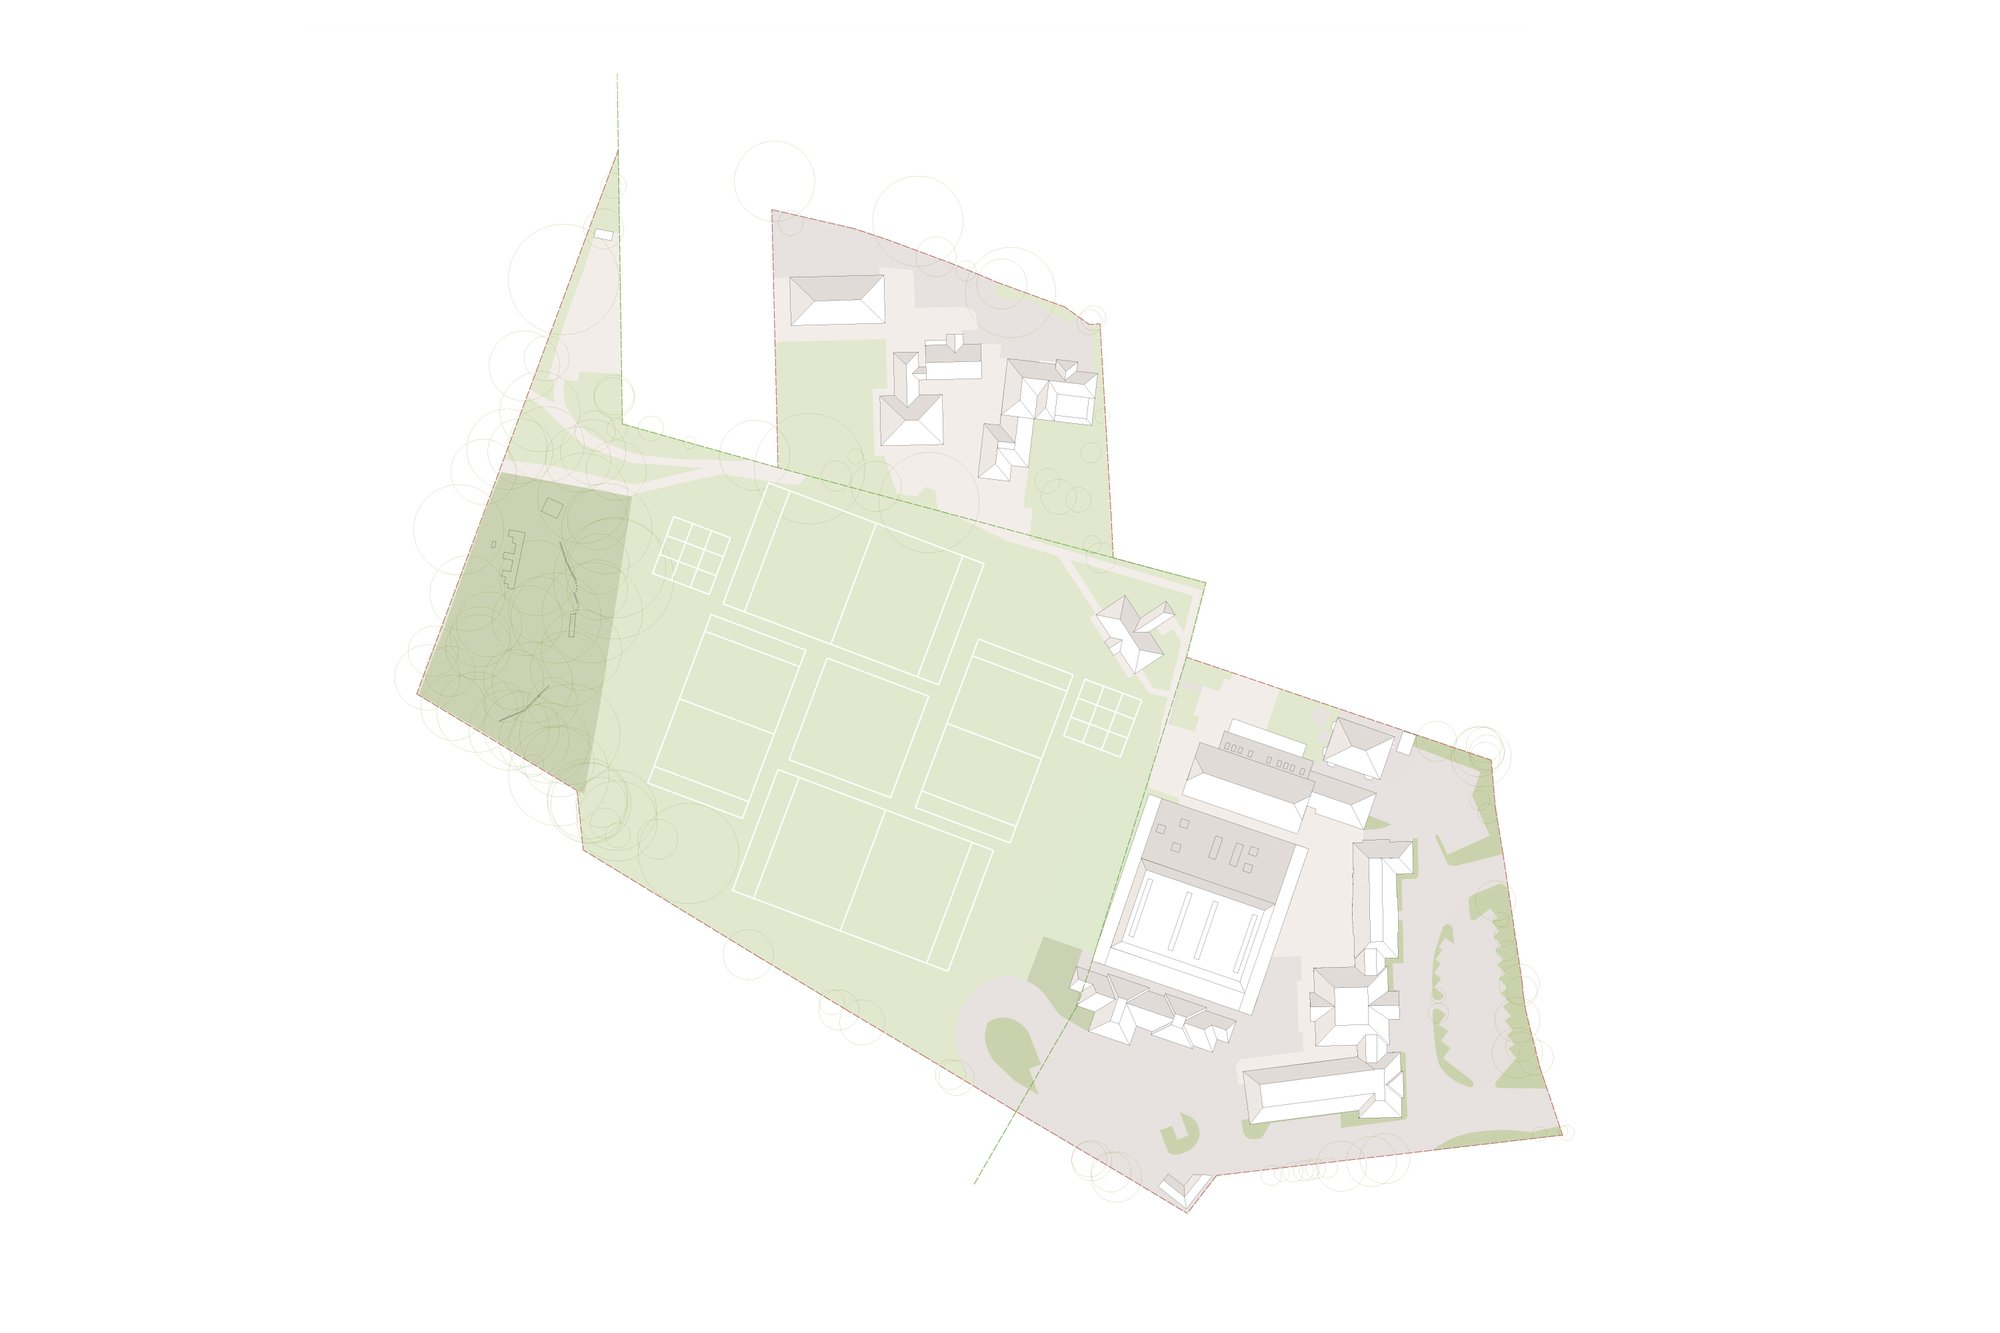 6_9_1502_Gayhurst School_site plan 2.jpg